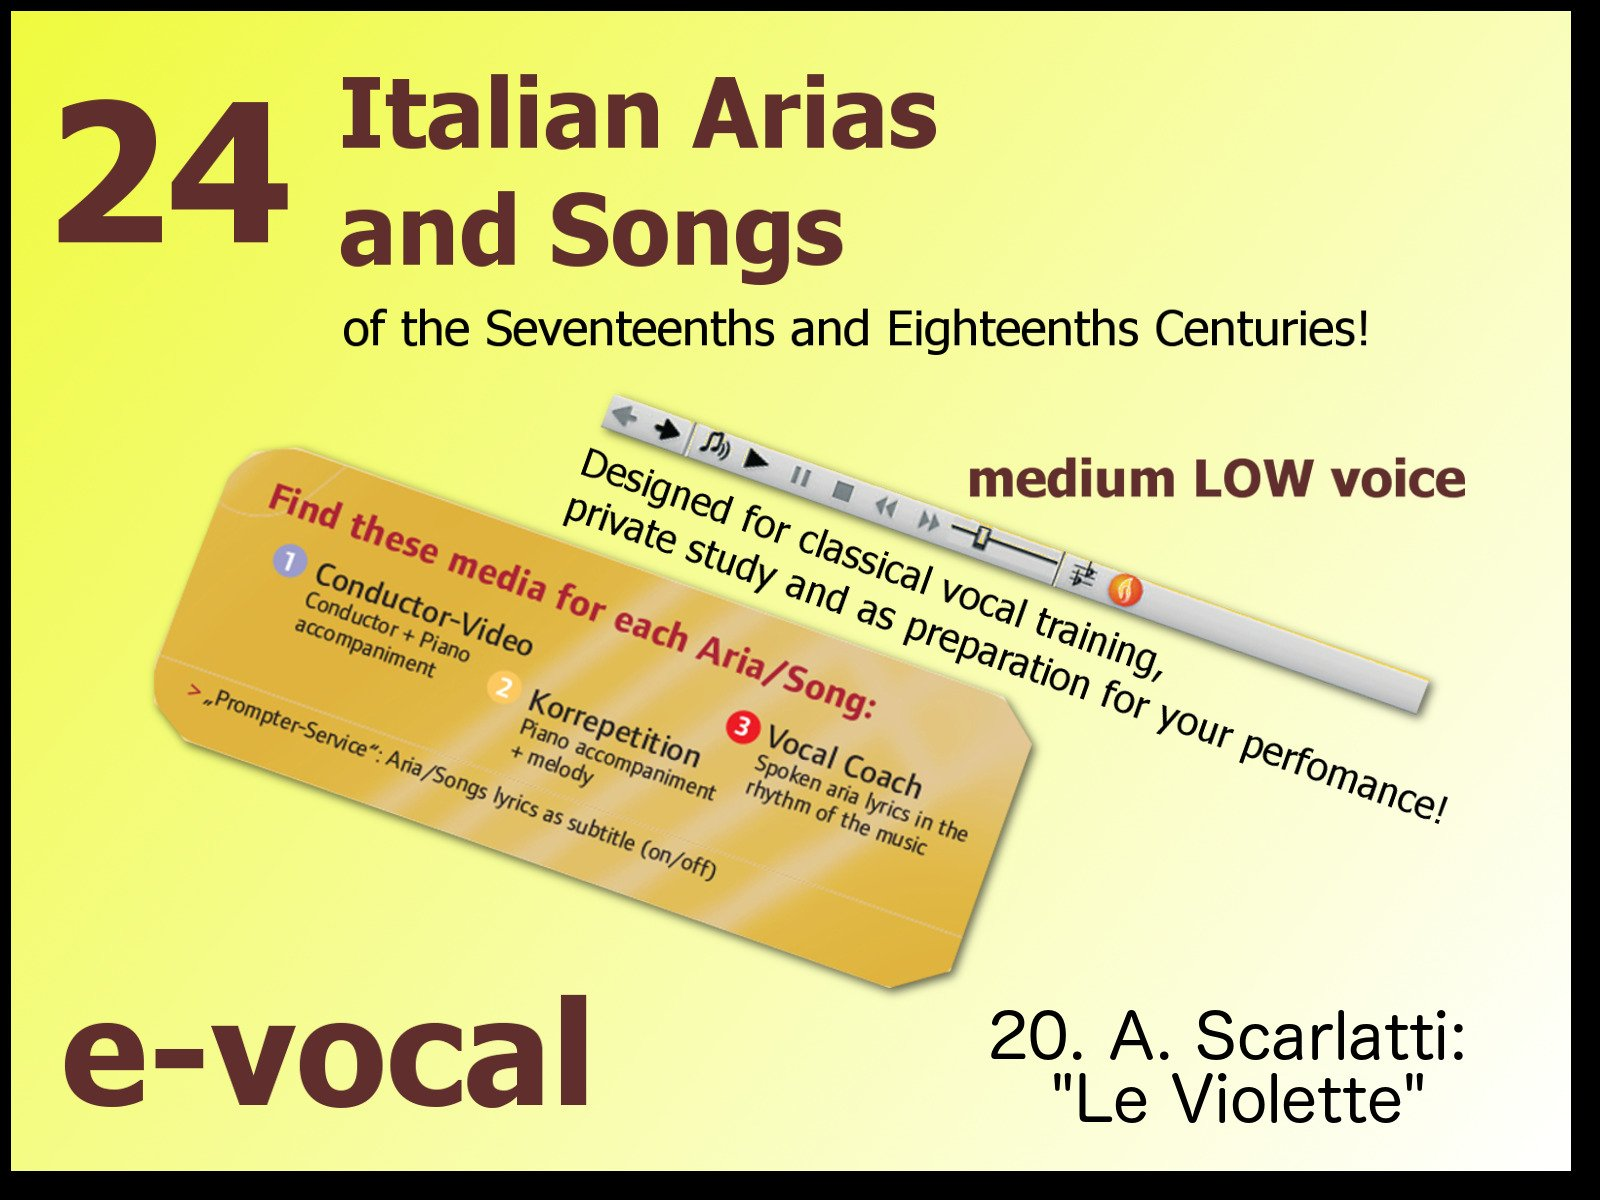 24 Italian Songs and Arias - Season 5